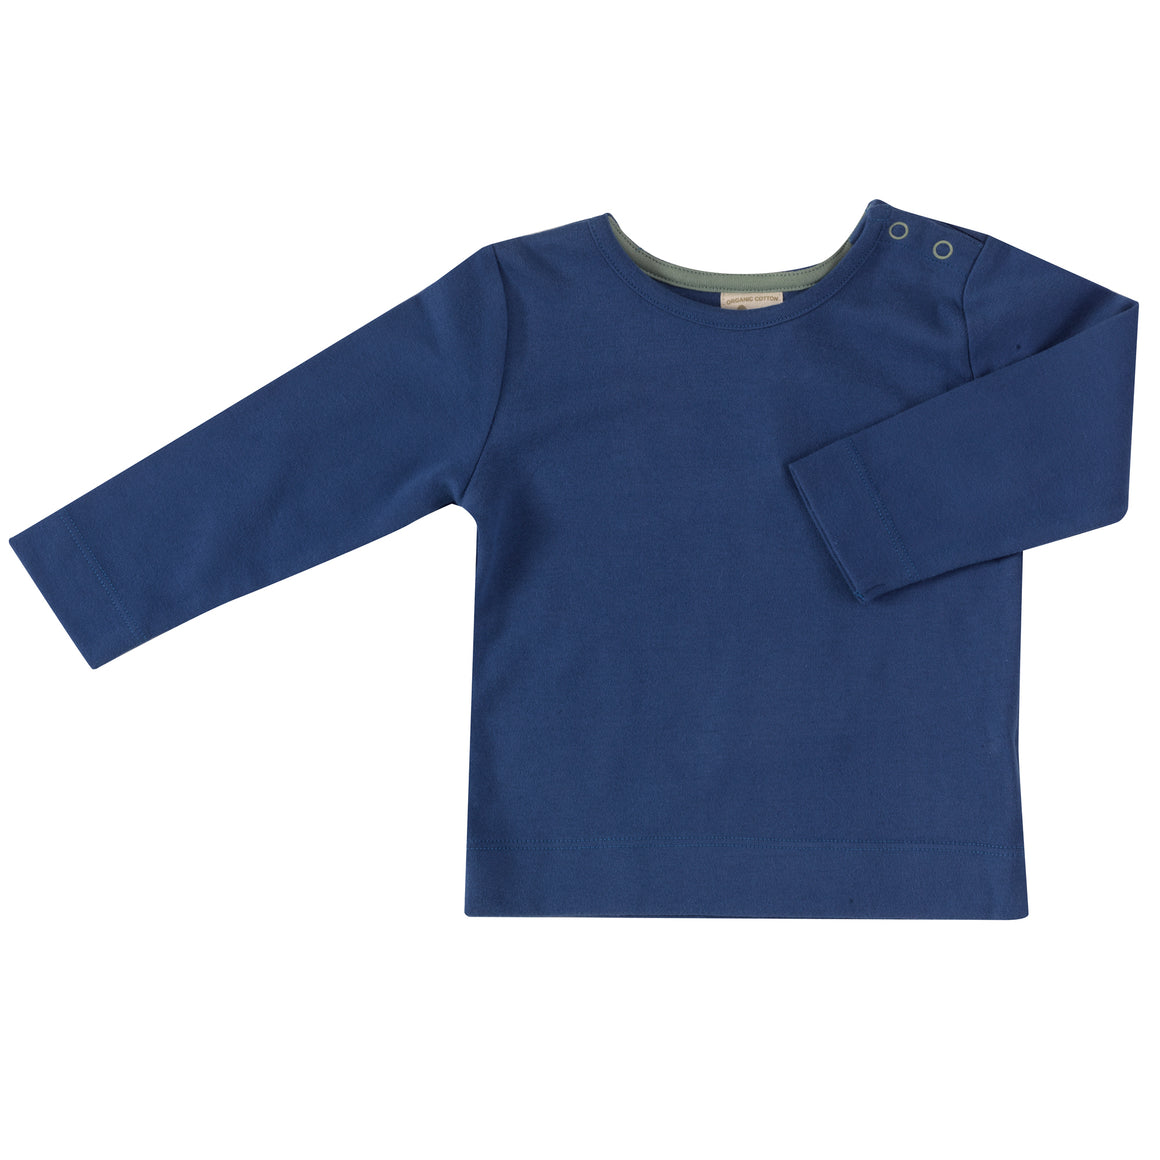 Long Sleeve T-Shirt (Plain) in Delft Blue